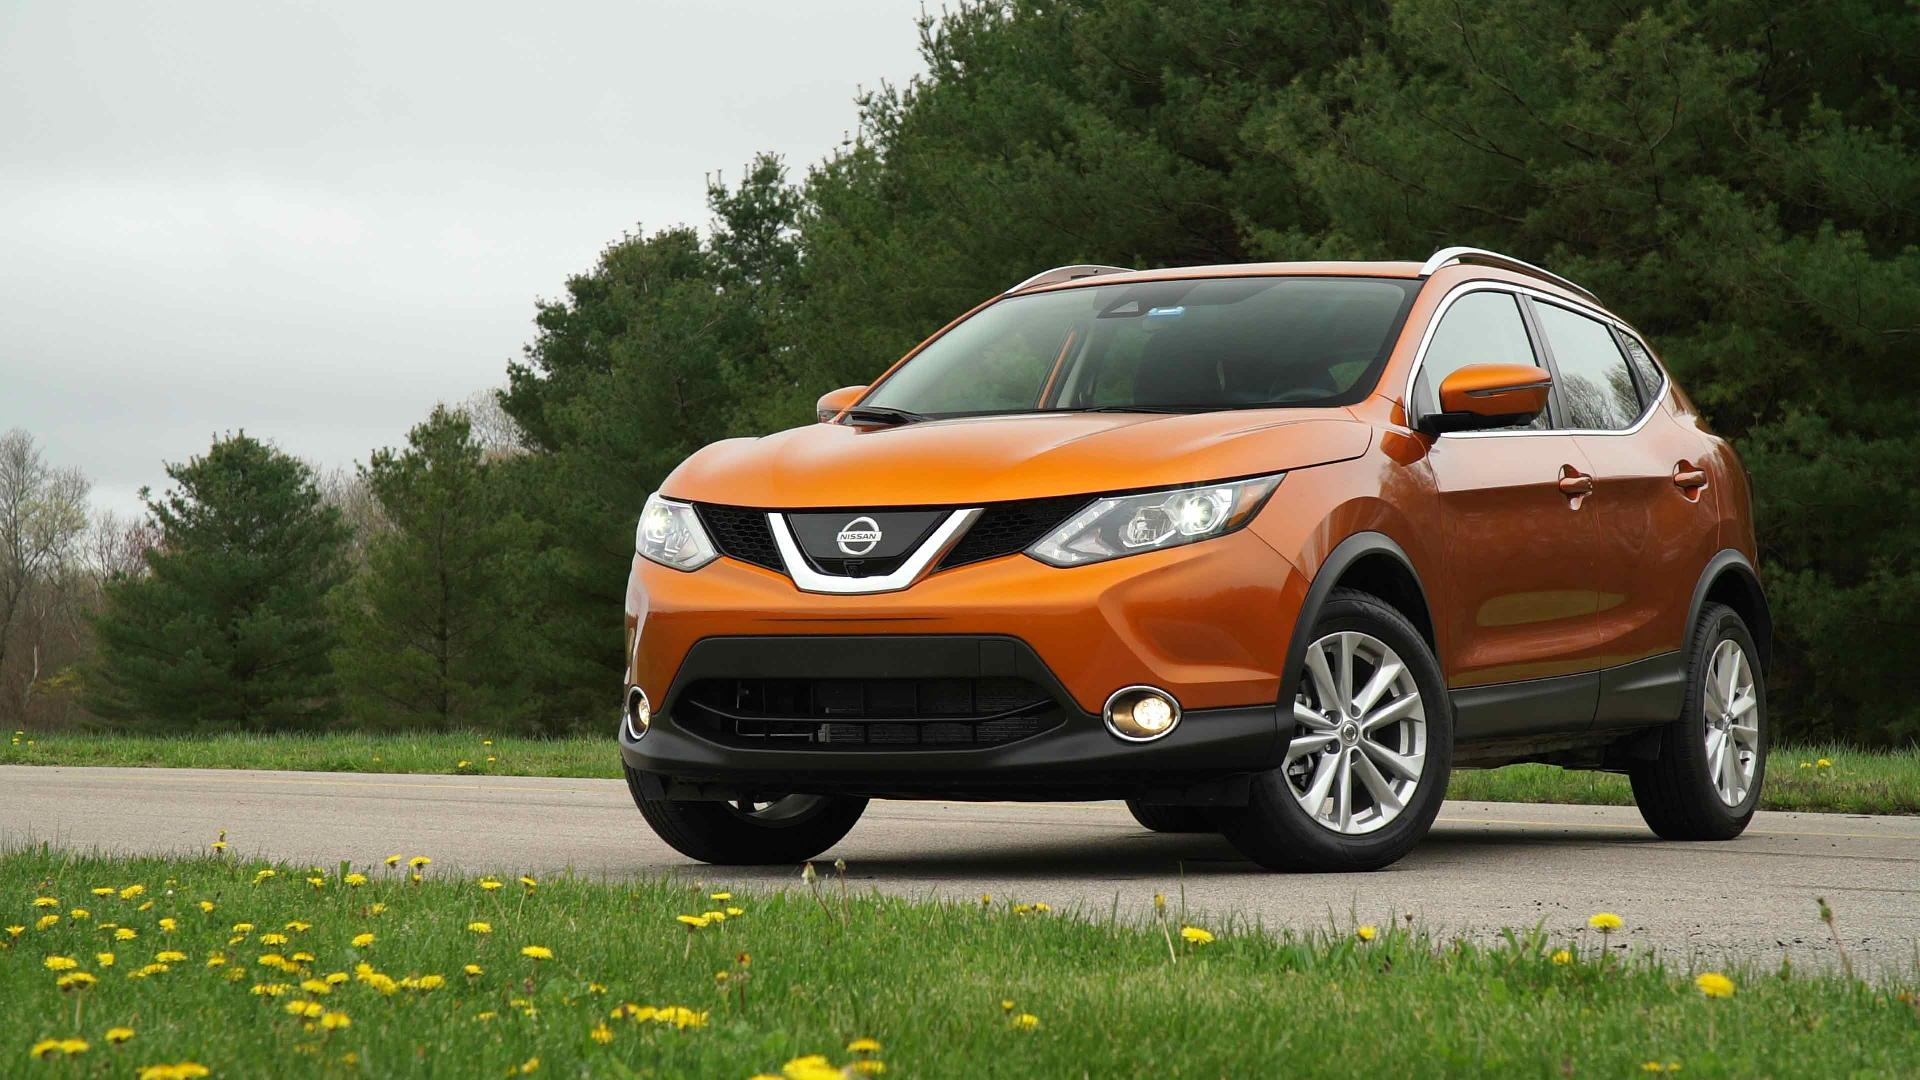 Nissan Rogue Service Manual: Air cleaner filter